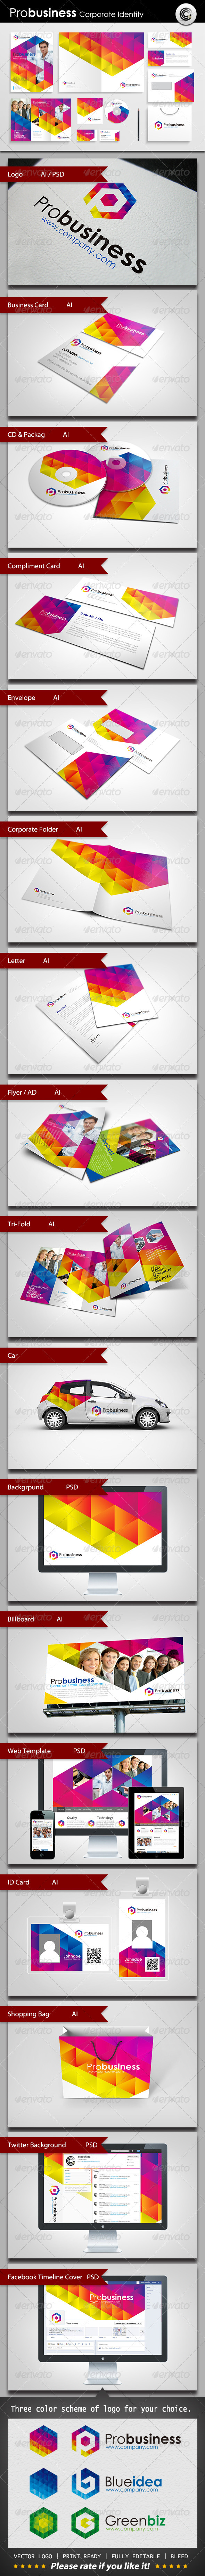 GraphicRiver ProBusiness Corporate Identity 3103138